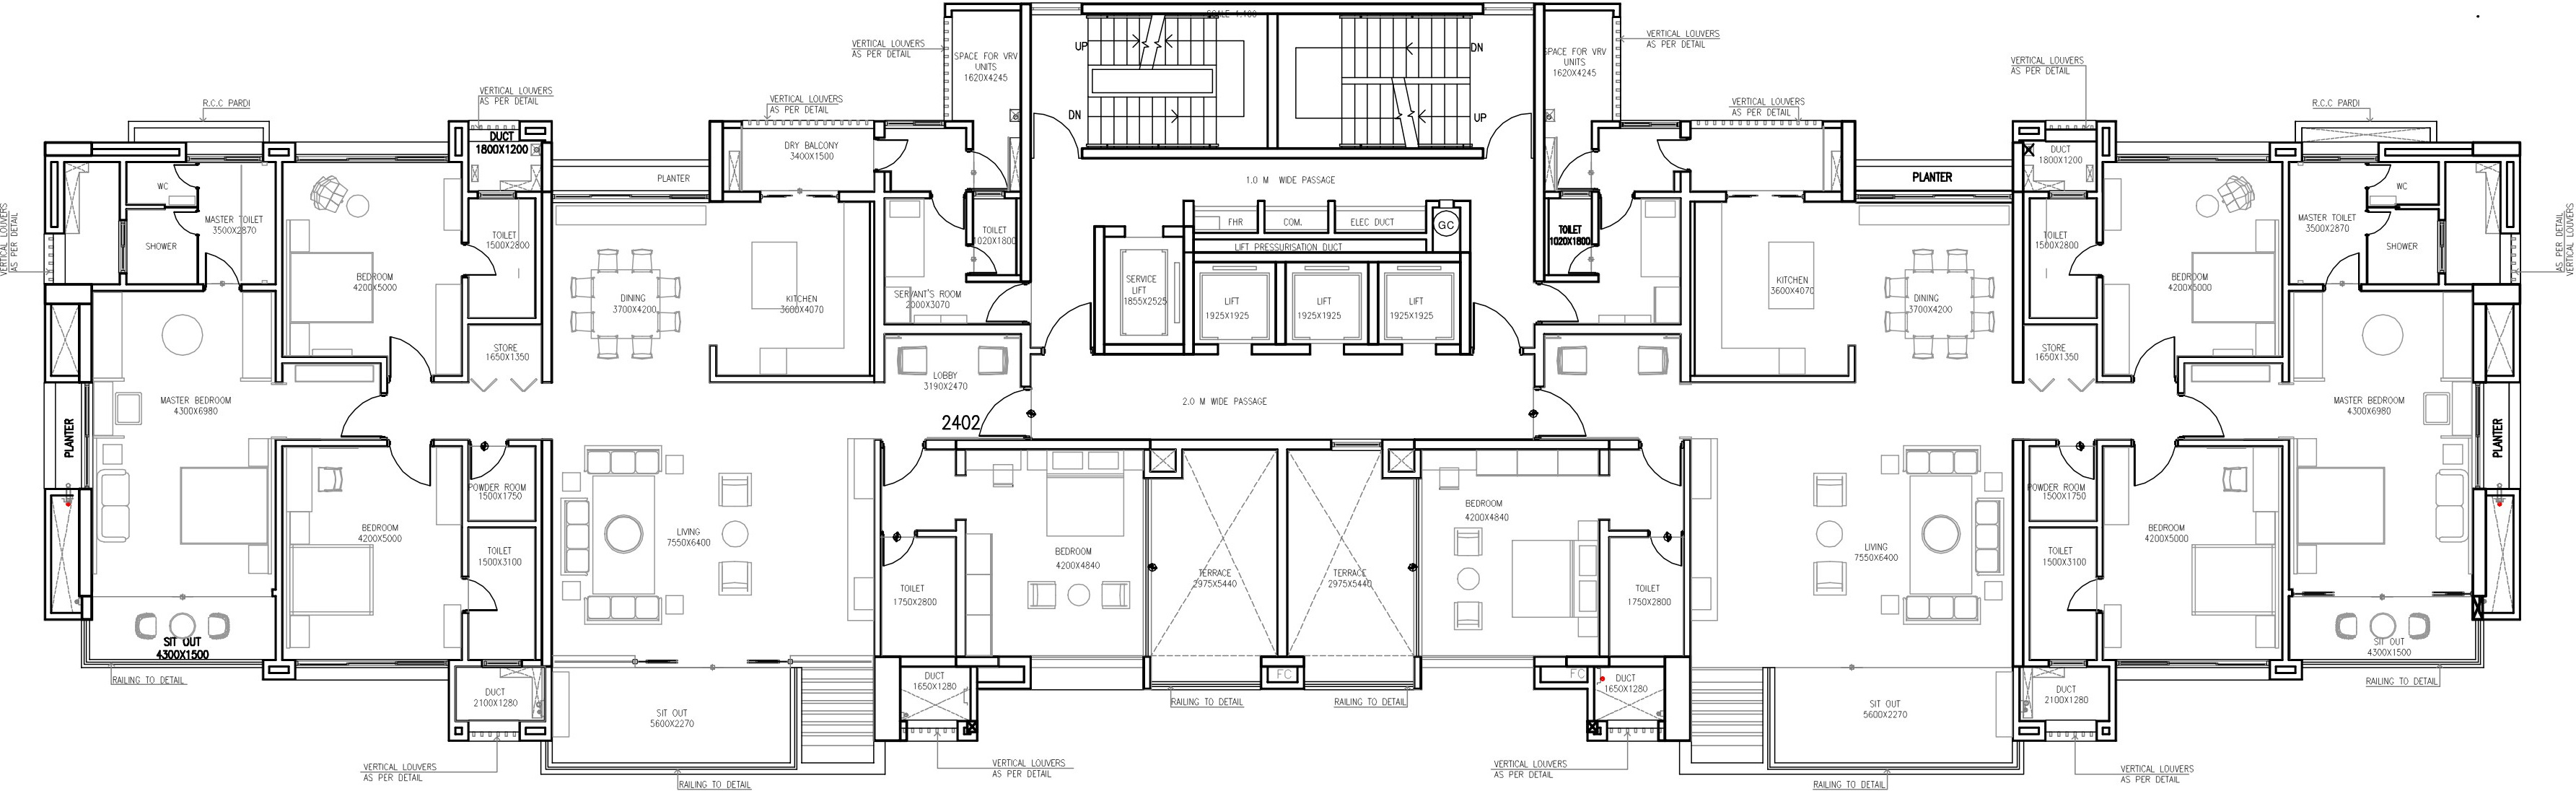 100 4000 sq ft floor plans 3800 sq ft ranch house for 4000 square feet dimensions